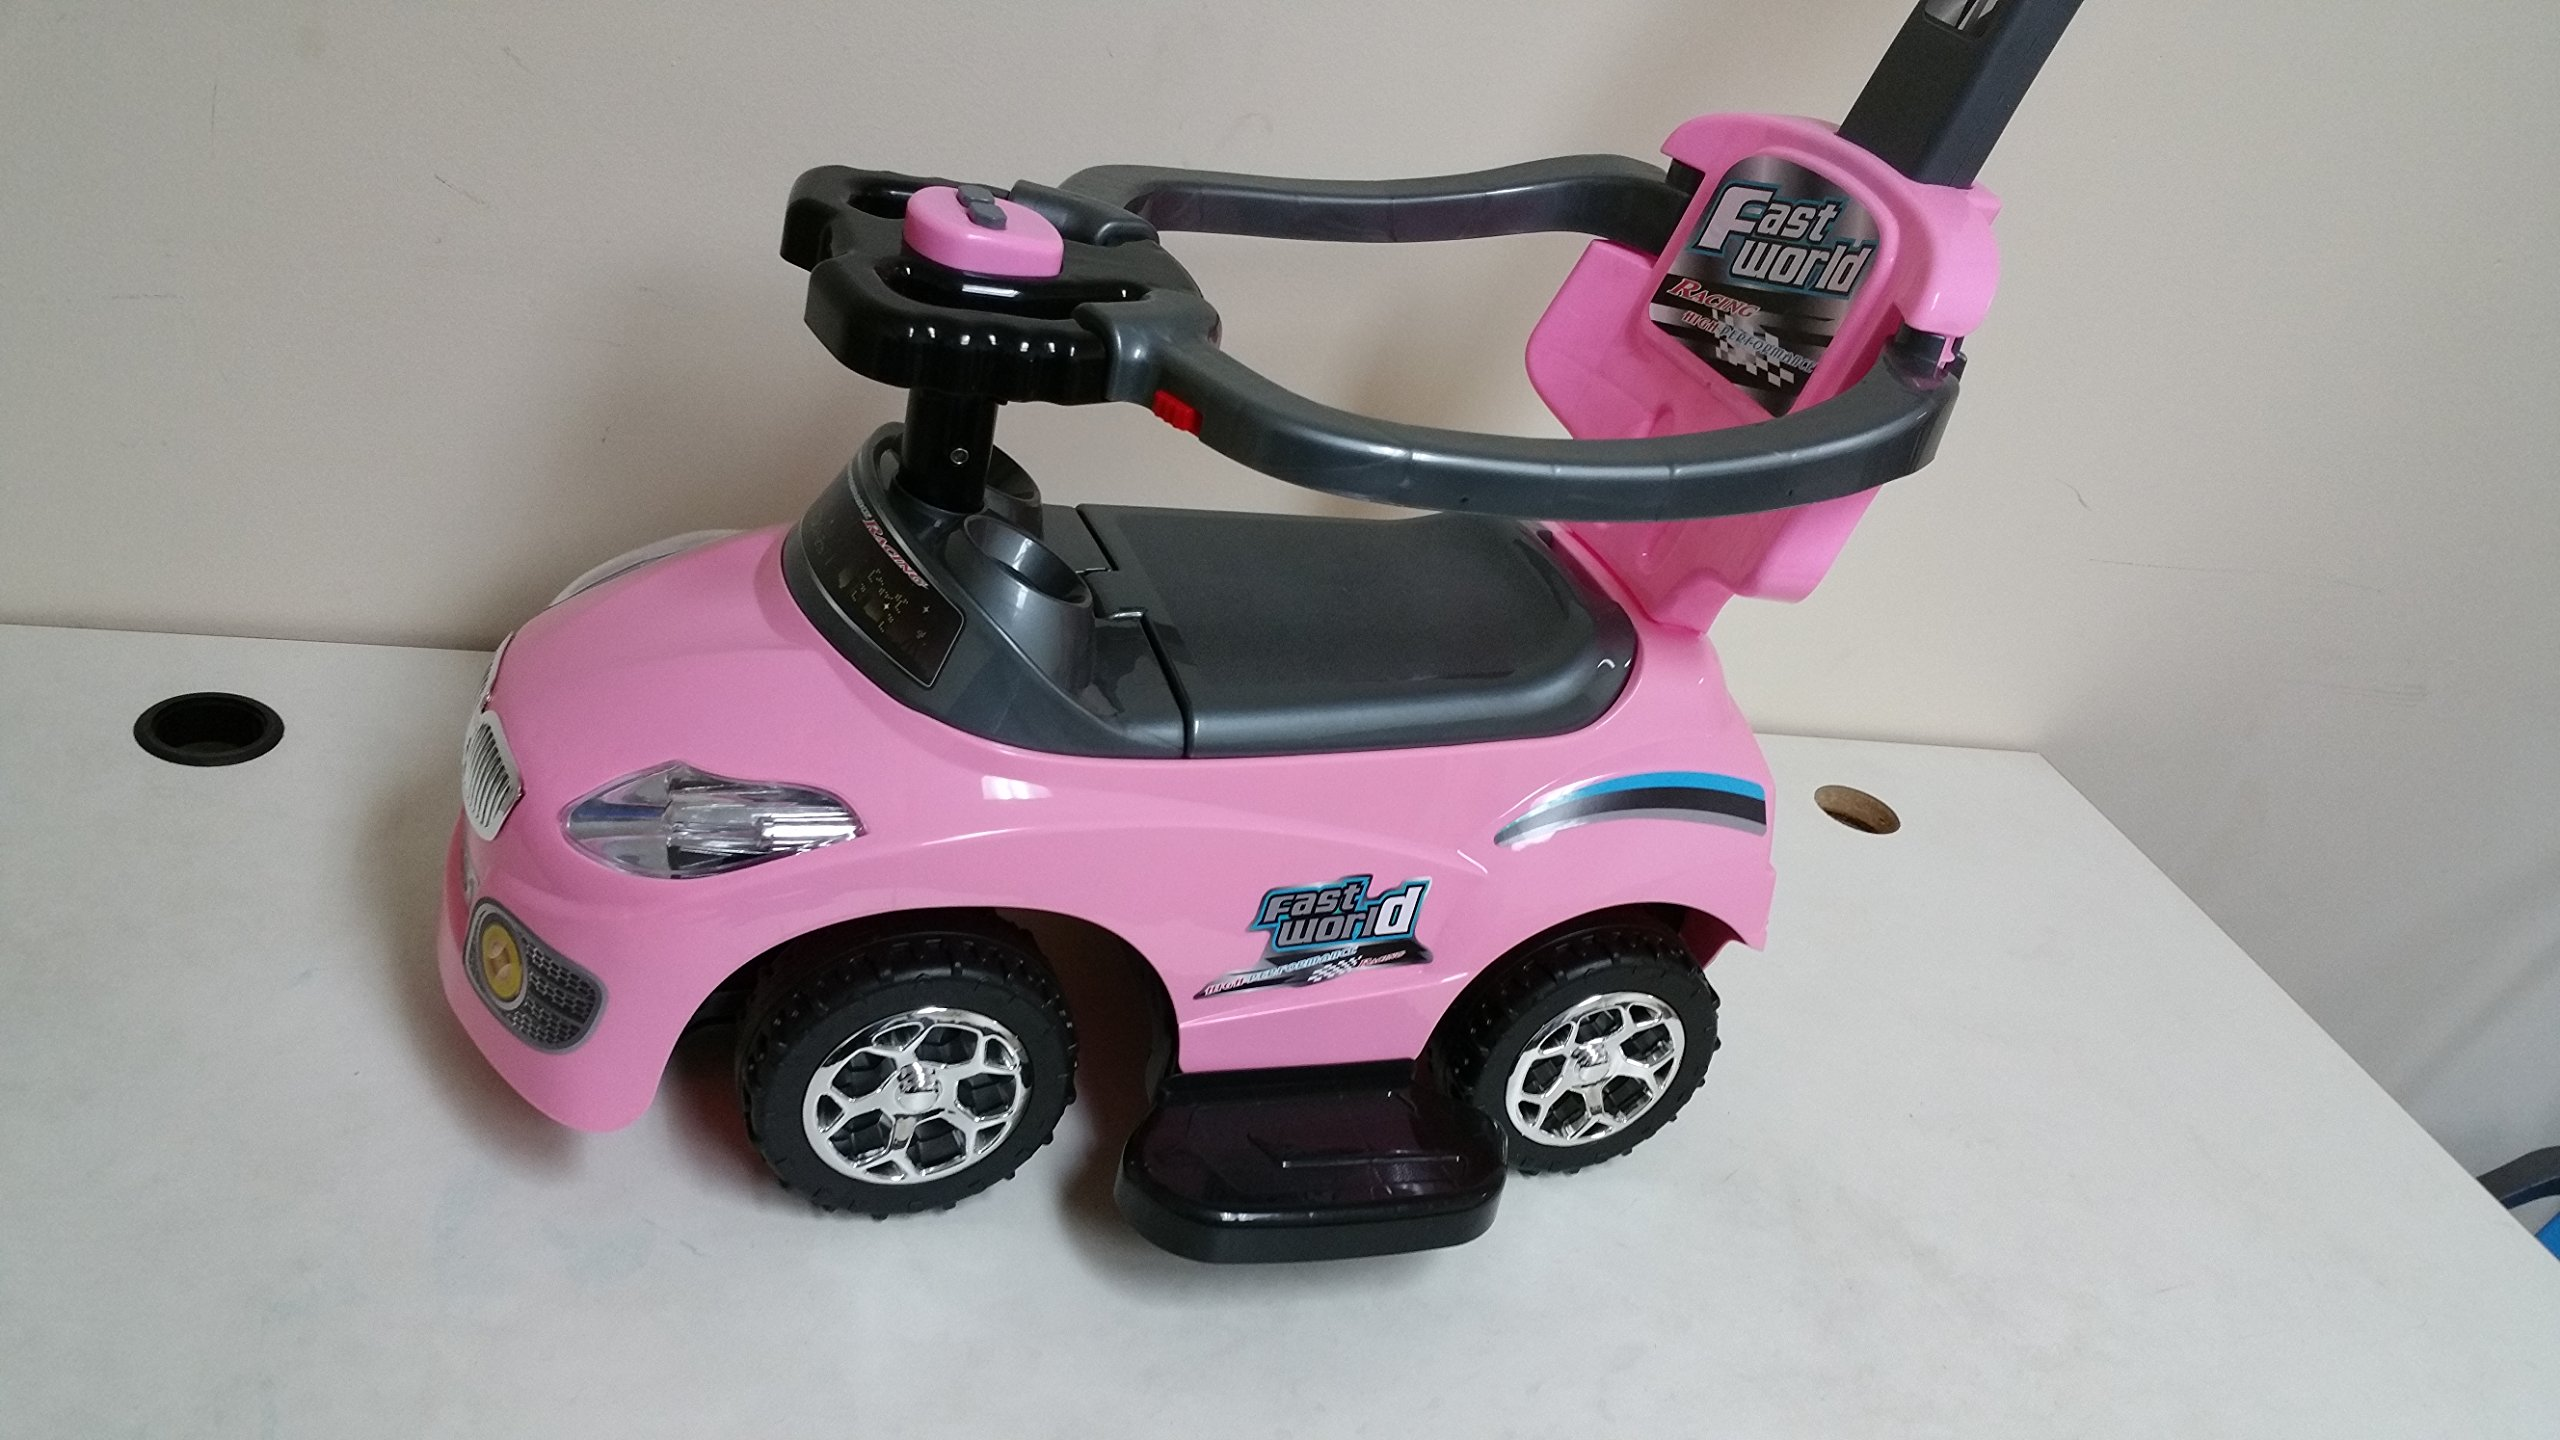 861 pink kid ride on 3 in 1 push car toddler wagon w handle horn outdoor ebay. Black Bedroom Furniture Sets. Home Design Ideas